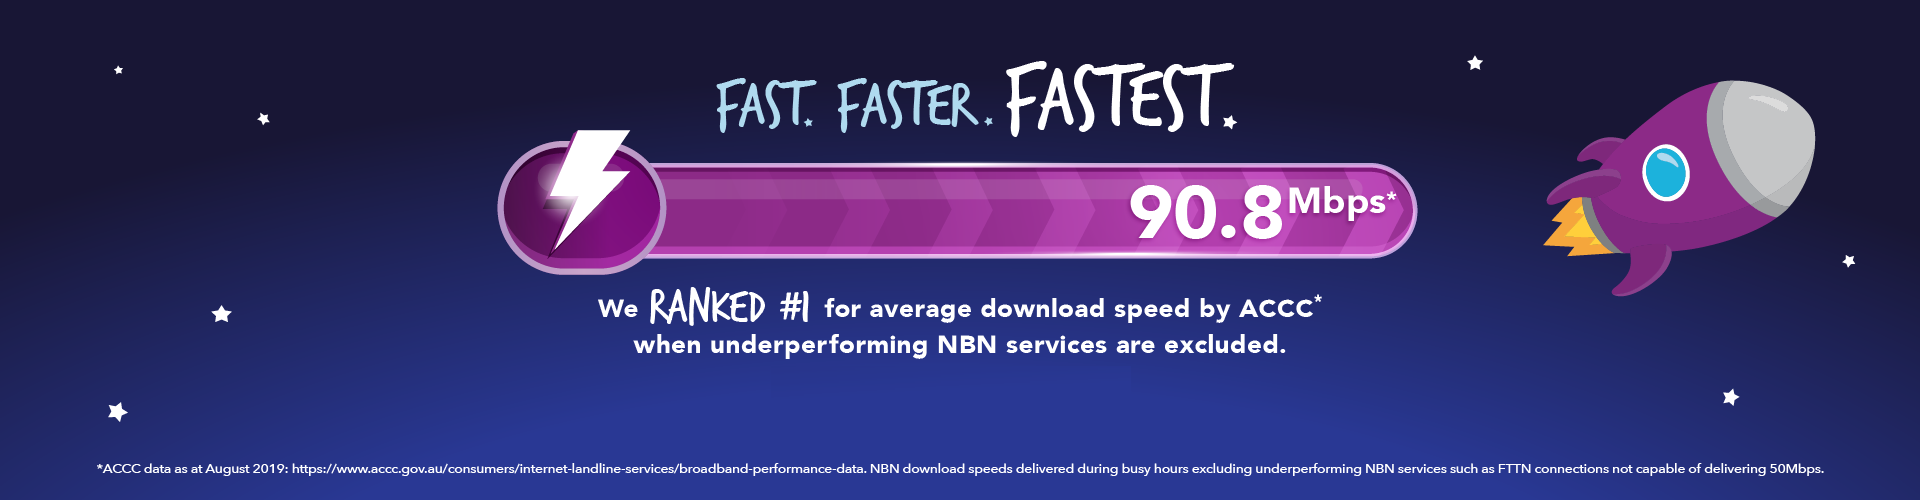 MyRepublic Australia 90.8 Mbps NBN Speed